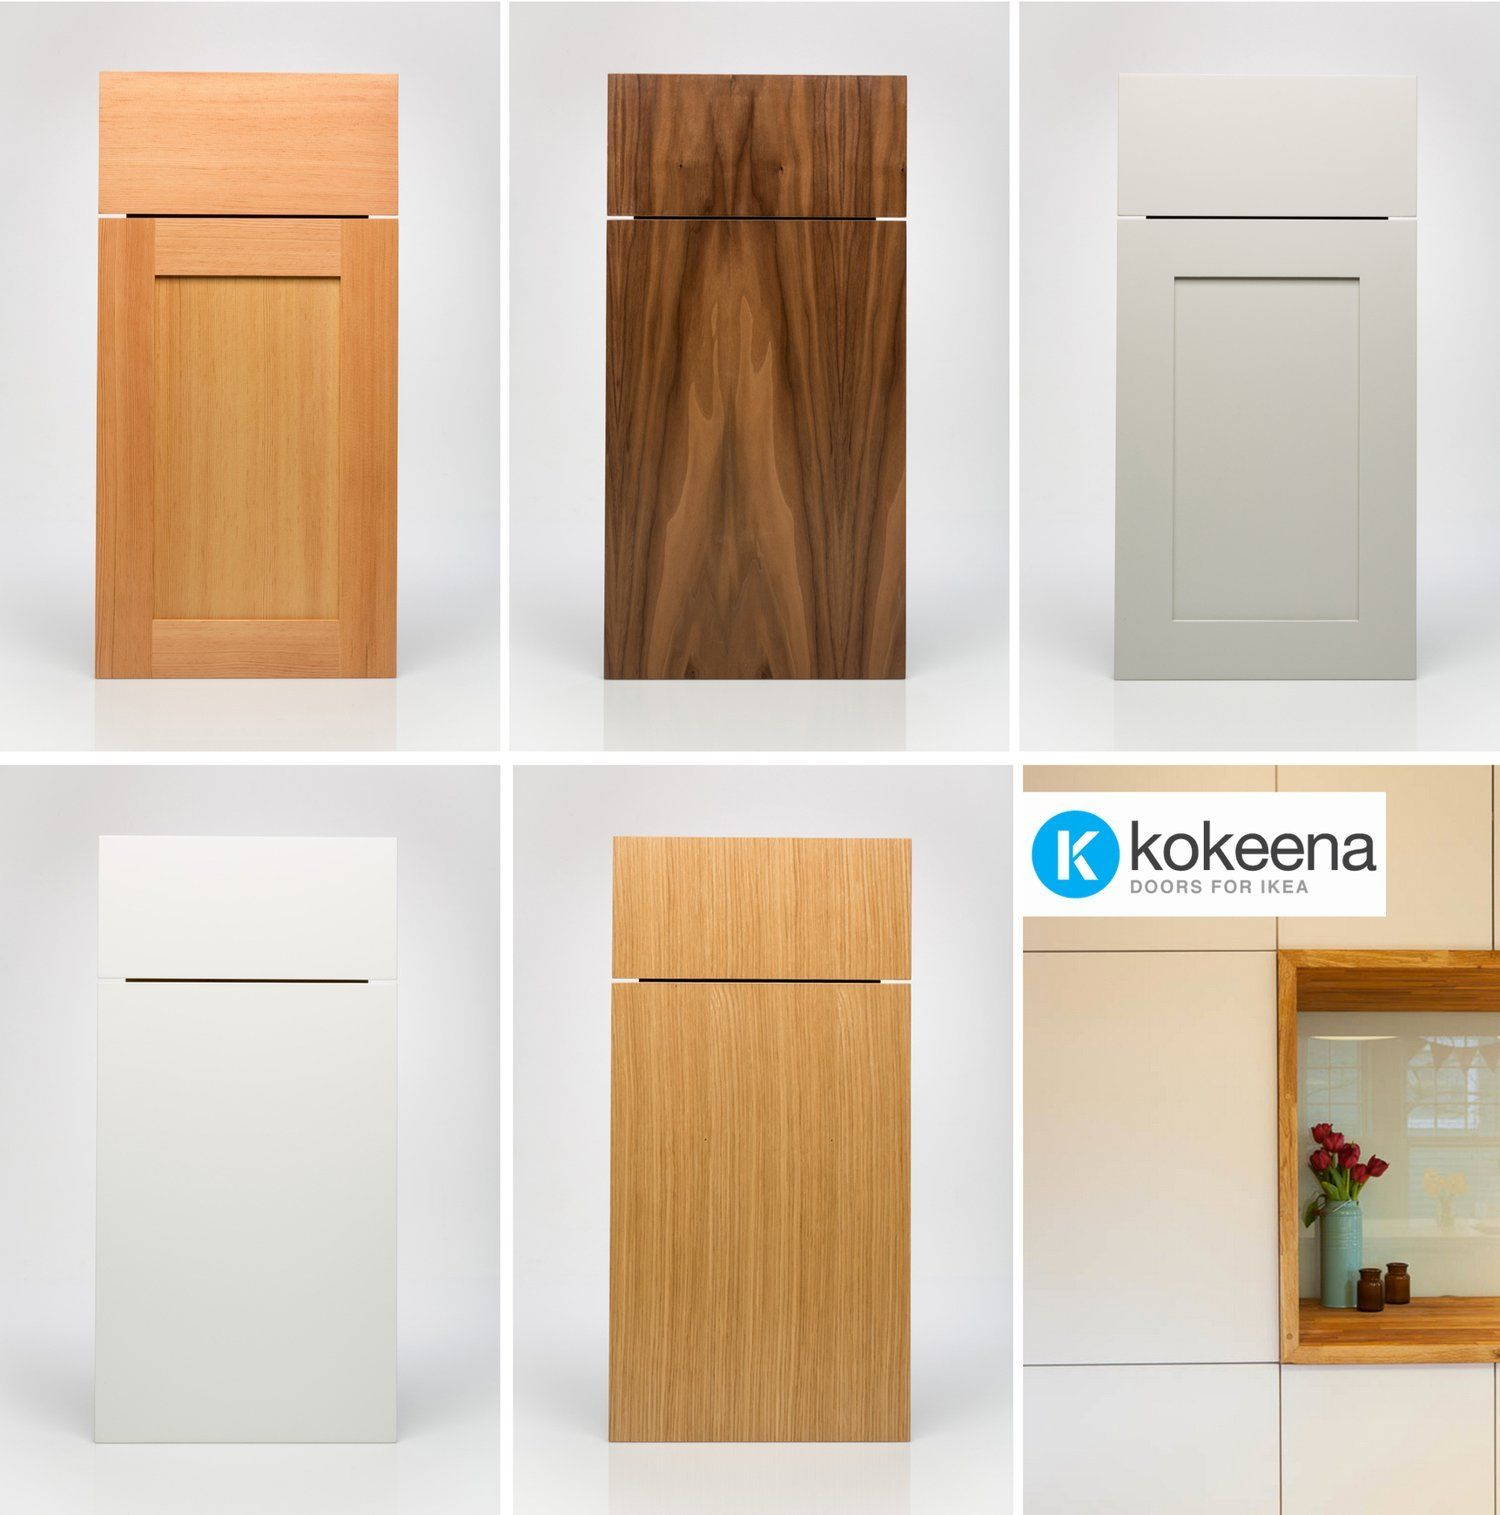 Kokeena real wood ready made cabinet doors for ikea for What are ikea kitchen cabinets made of